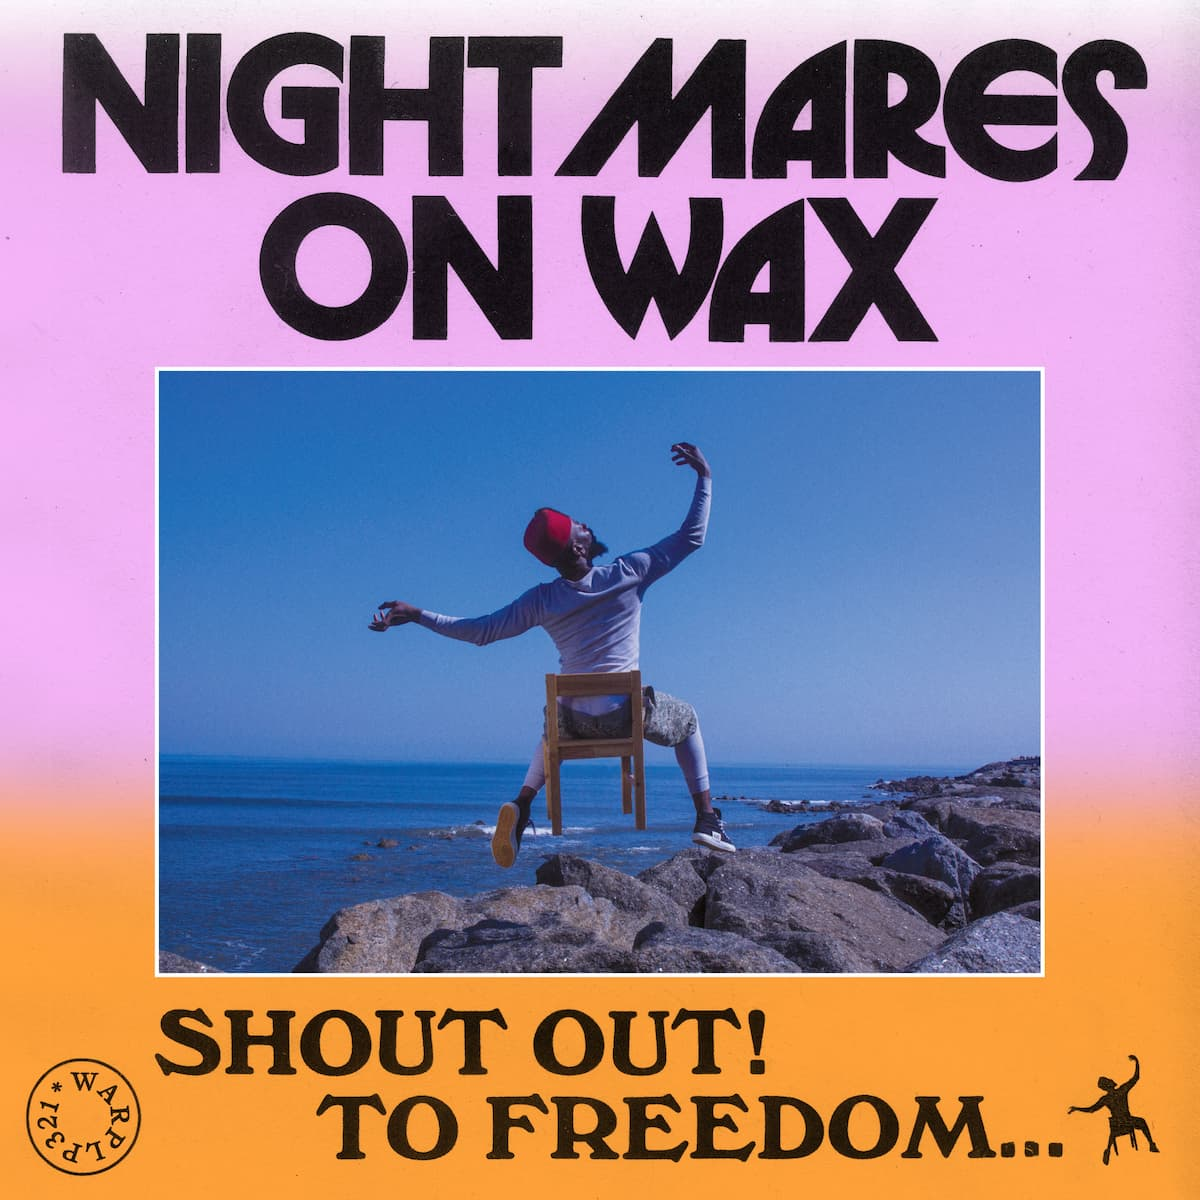 Nightmares on Wax - Shout Out! To Freedom... | Albumtipp und Stream